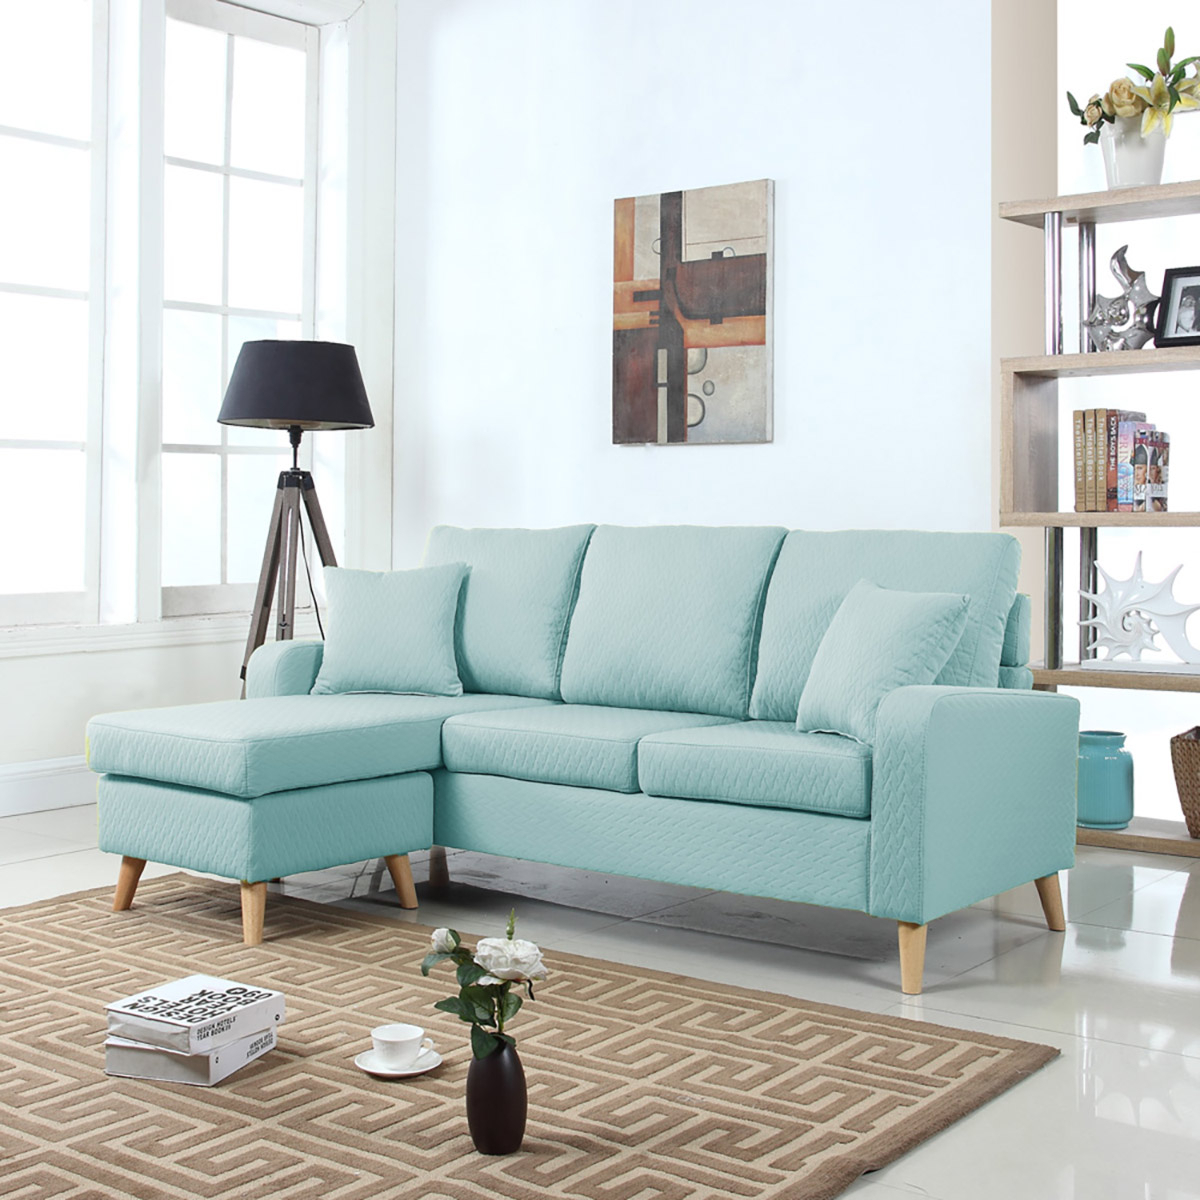 Mobilis Mid Century Modern Small Space Linen Fabric Inside Verona Mid Century Reversible Sectional Sofas (View 2 of 15)